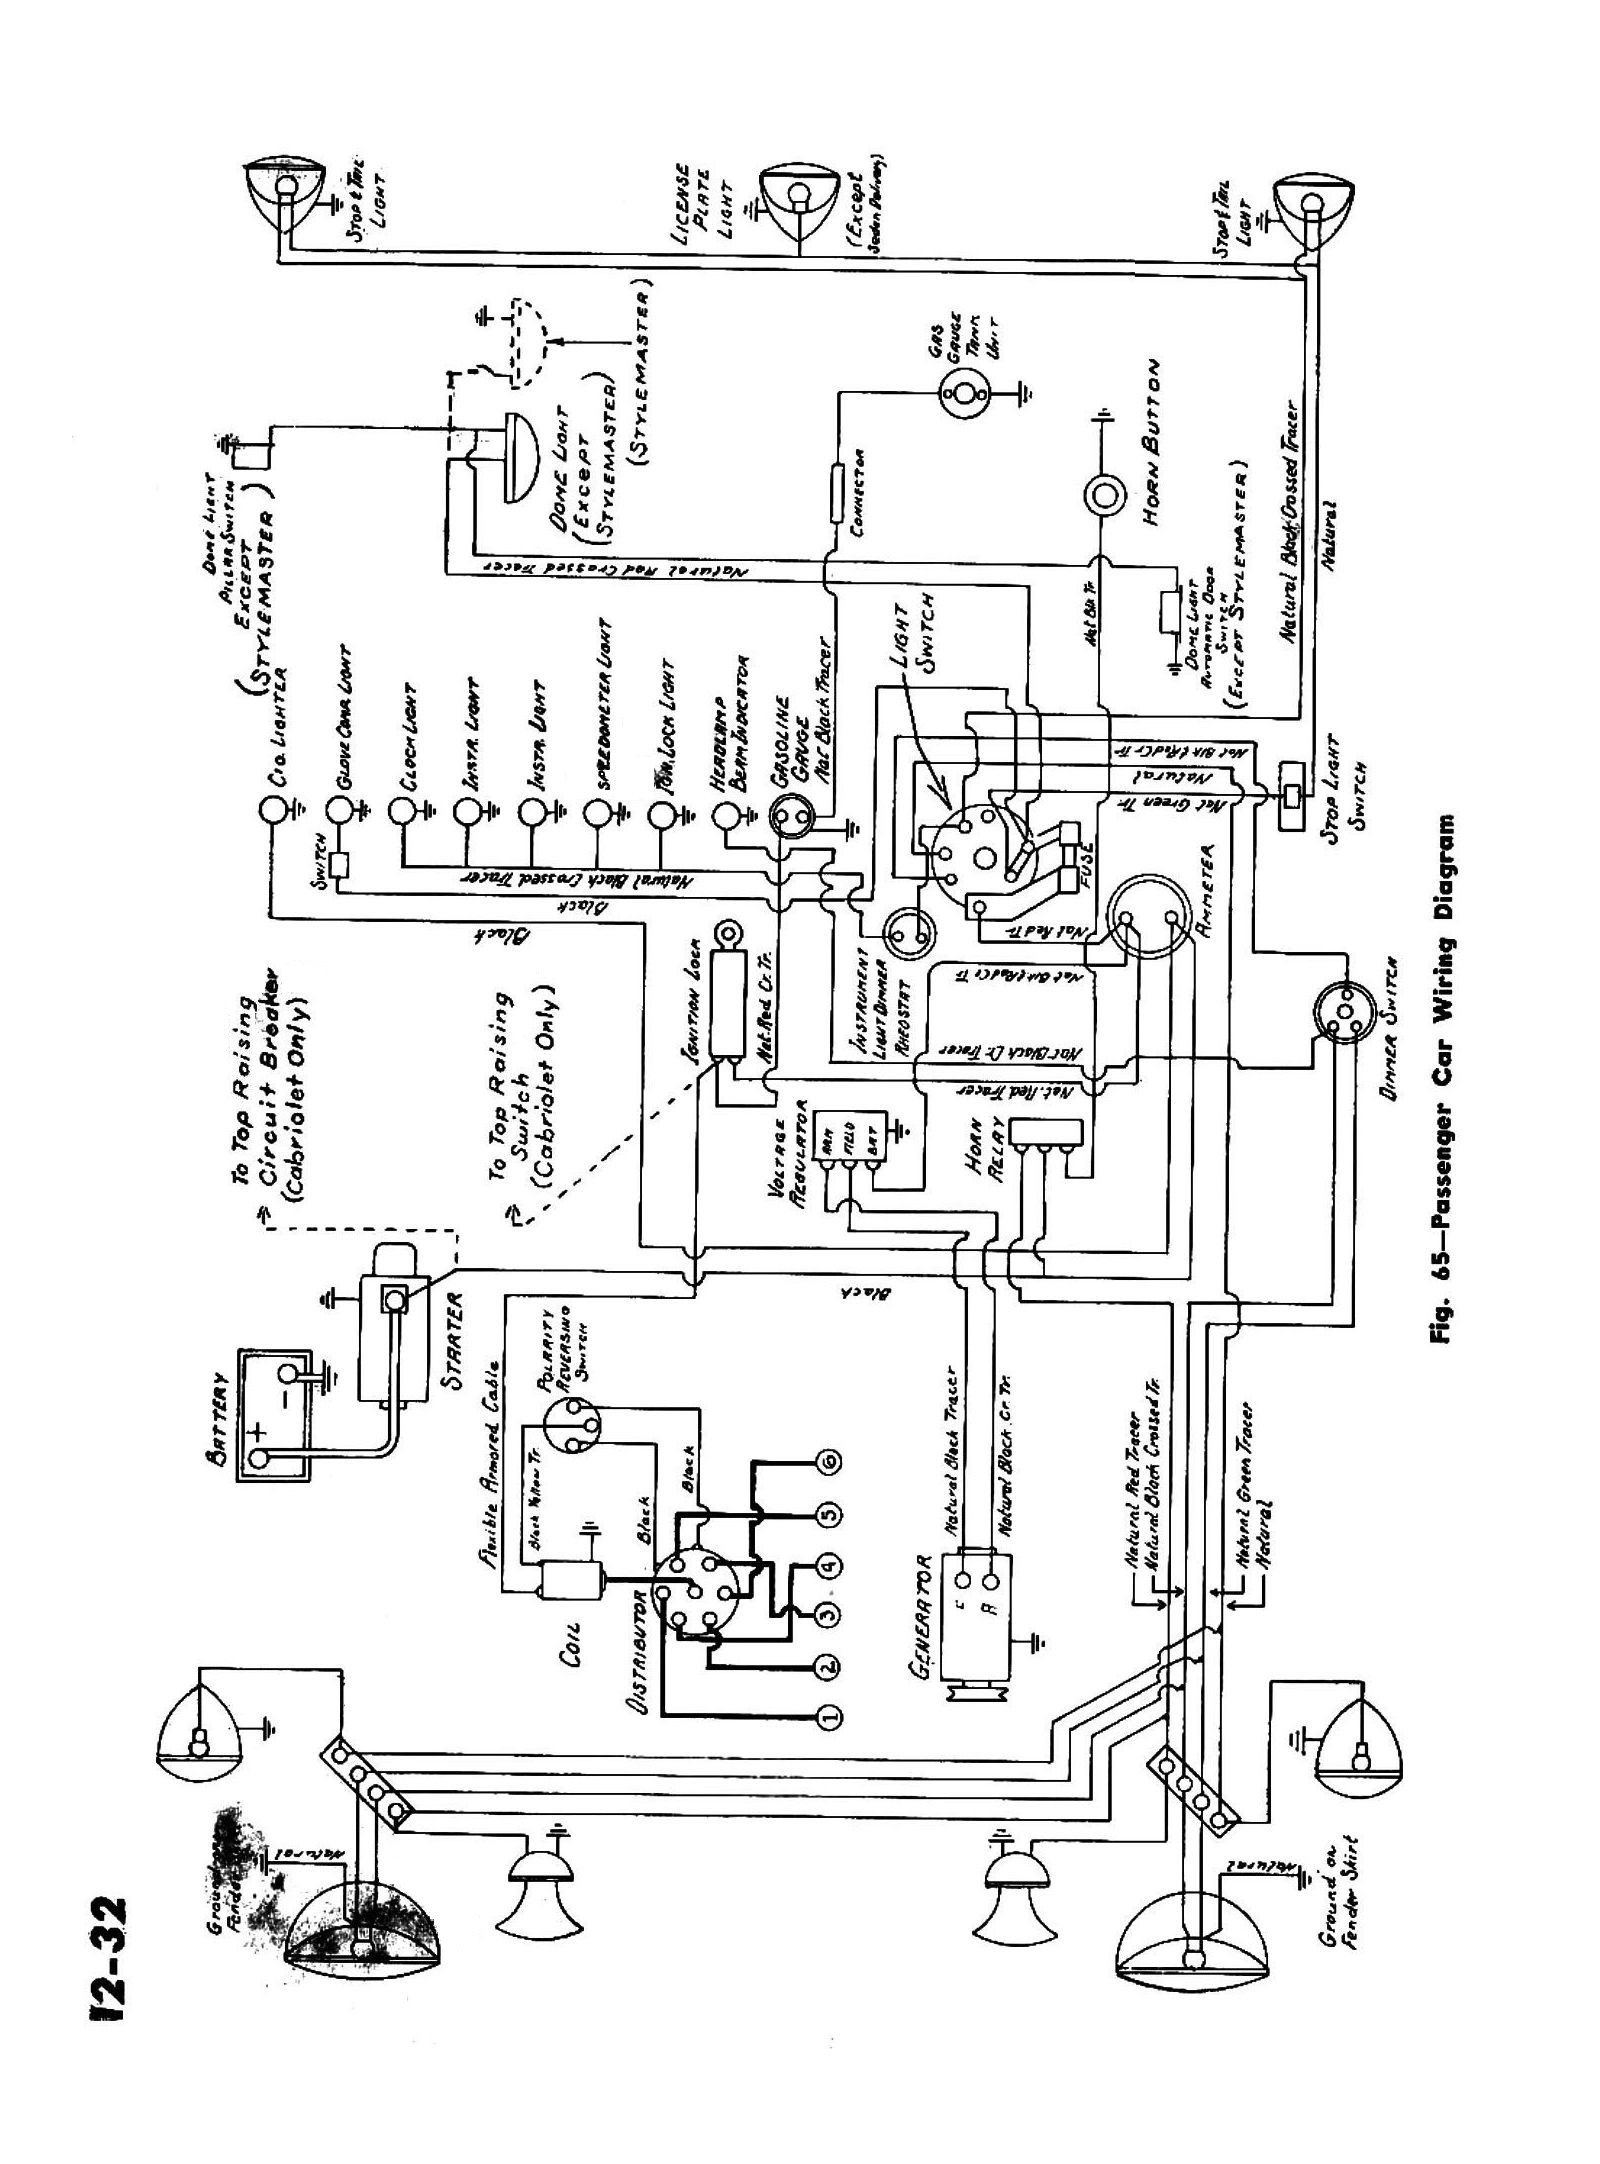 62 Lincoln Wiring Diagram Change Your Idea With 98 Navigator 1948 Library Rh 100 Codingcommunity De Reading Diagrams Control 2004